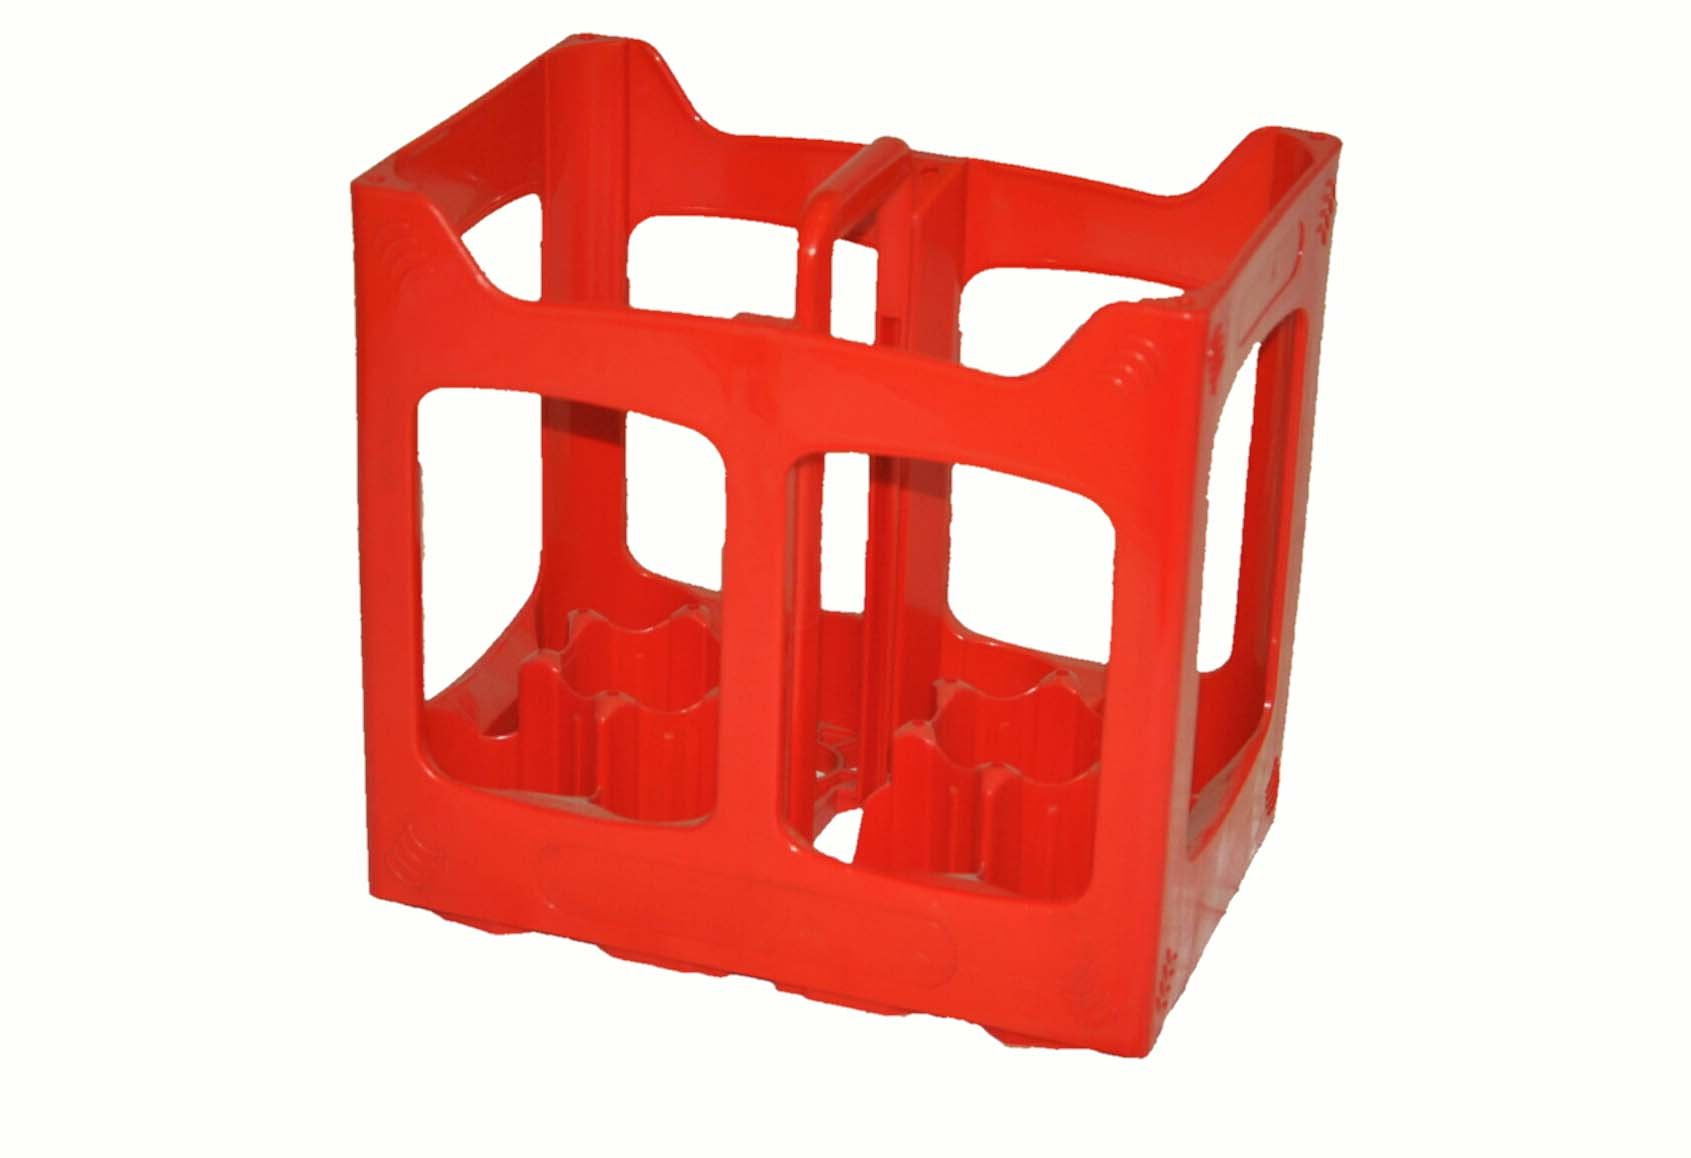 Plastic 10 Compartments Beer Soda Bottle Crate. Fits 10 traditional 12-17 oz Bottles. Beer Carrier Holder Basket Home Brew Storage Box Stacking Recycle Glass Polyethylene Breweries (Red)